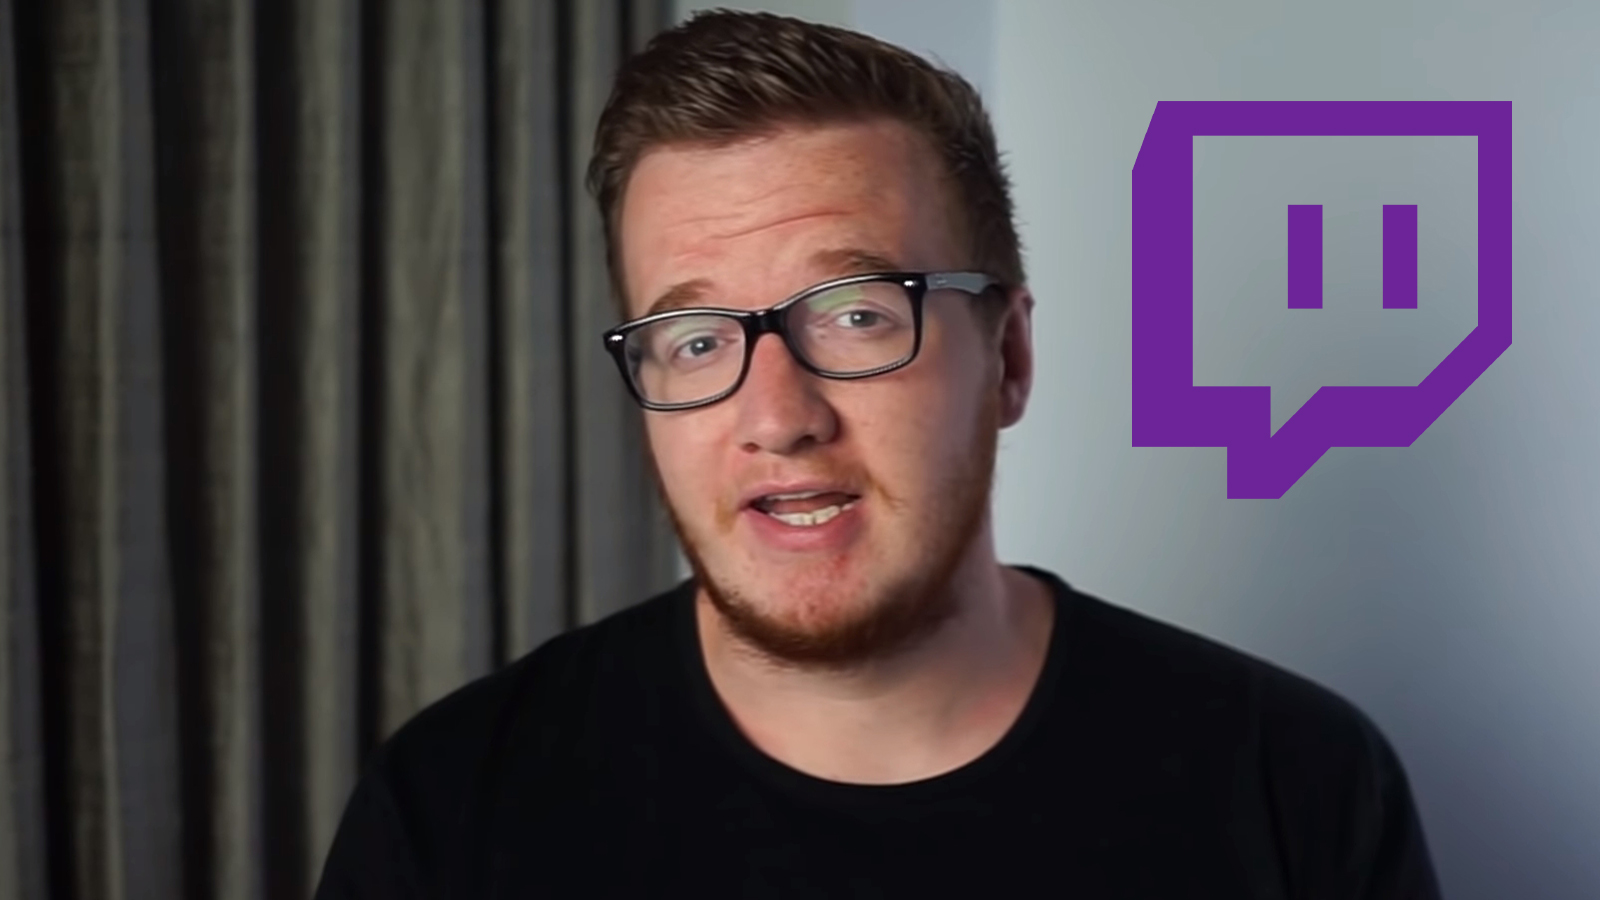 twitch bans youtuber mini ladd after allegations